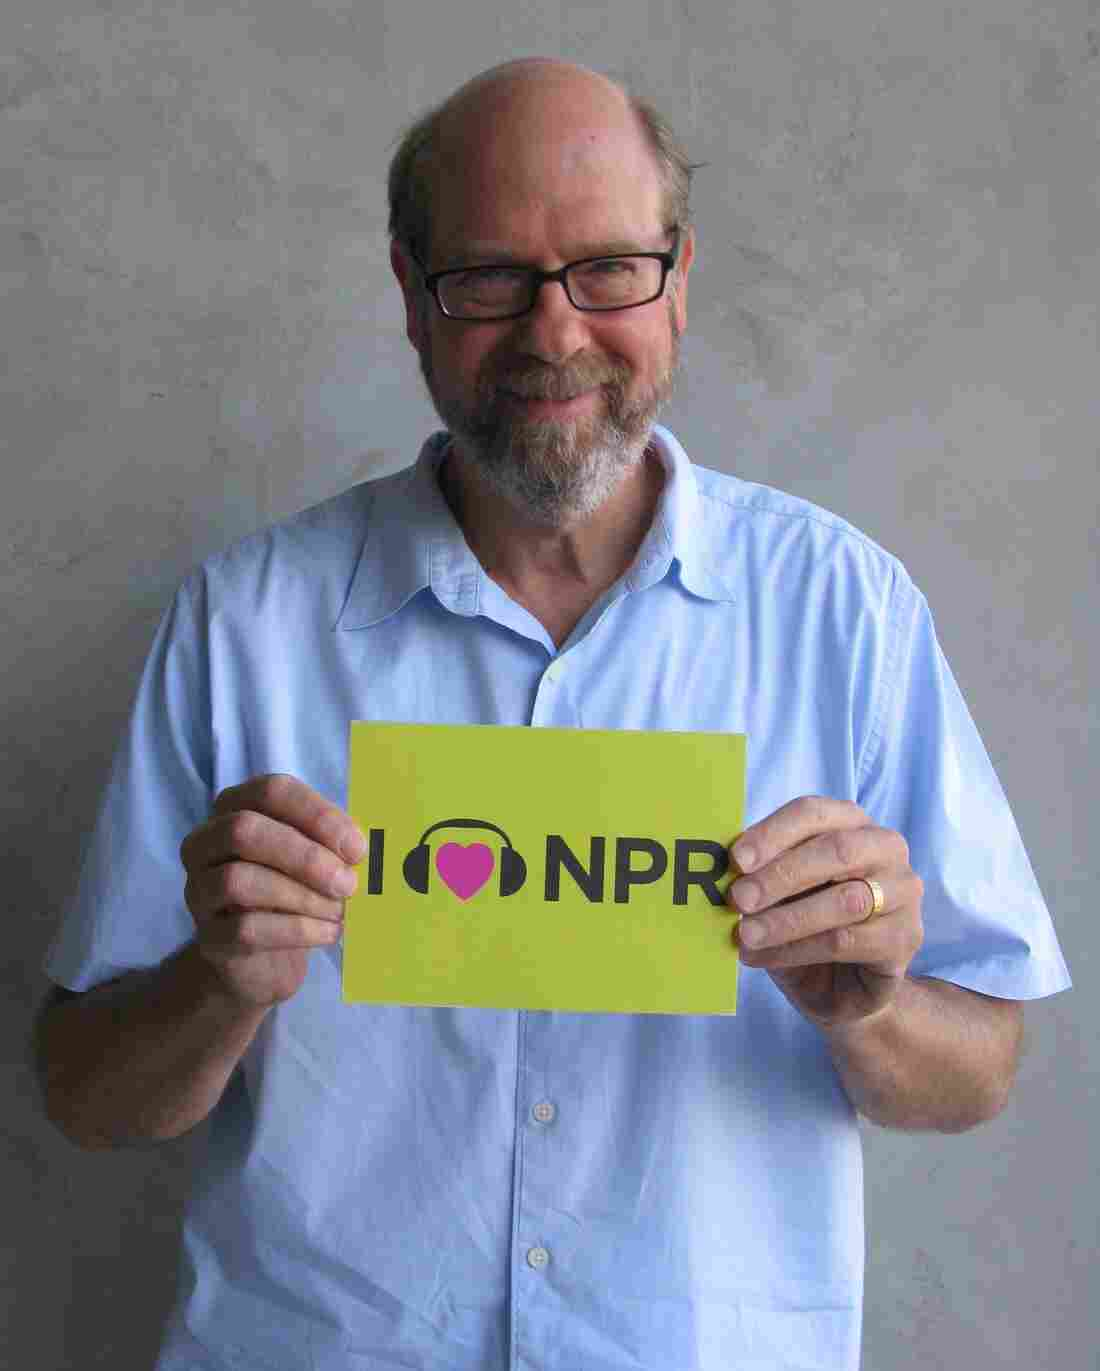 Stephen Tobolowsky at NPR West